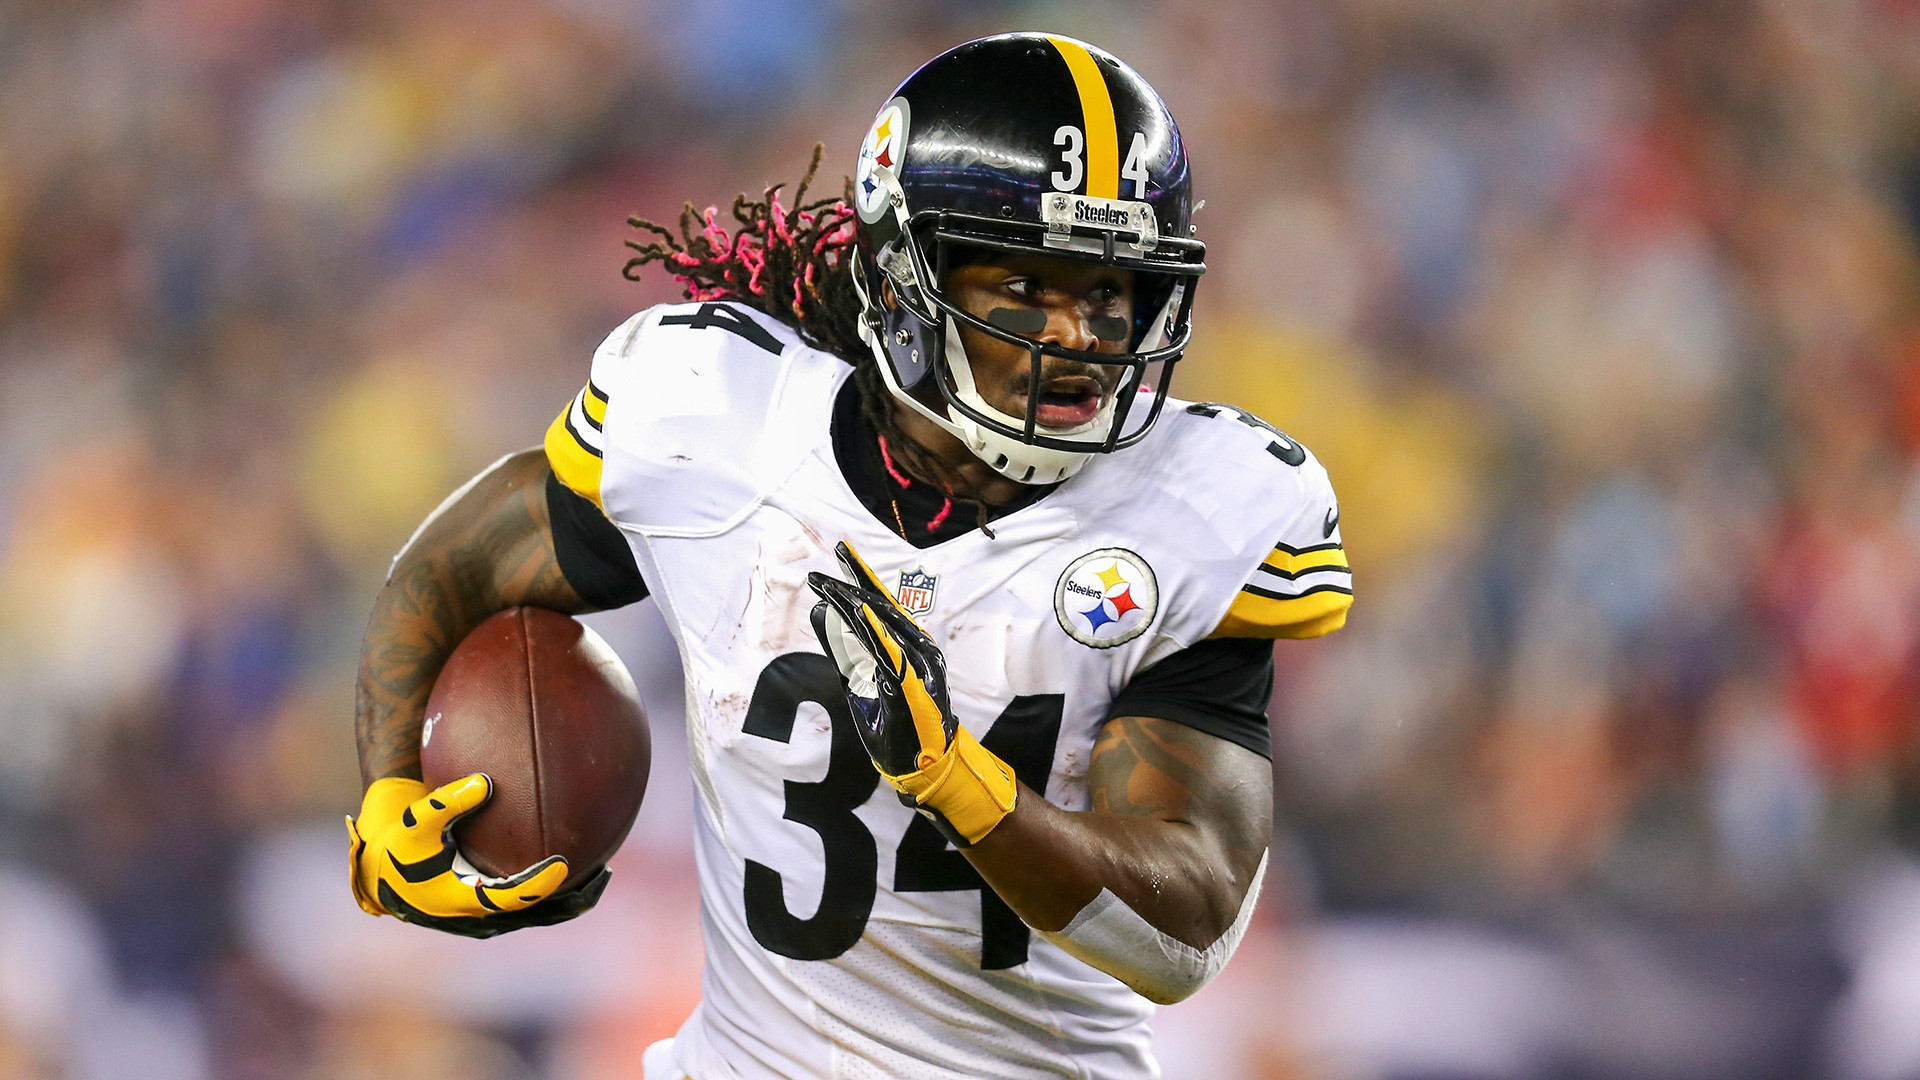 Despite his impressive performance, Williams recently lost the starting job  to LeVeon Bell.